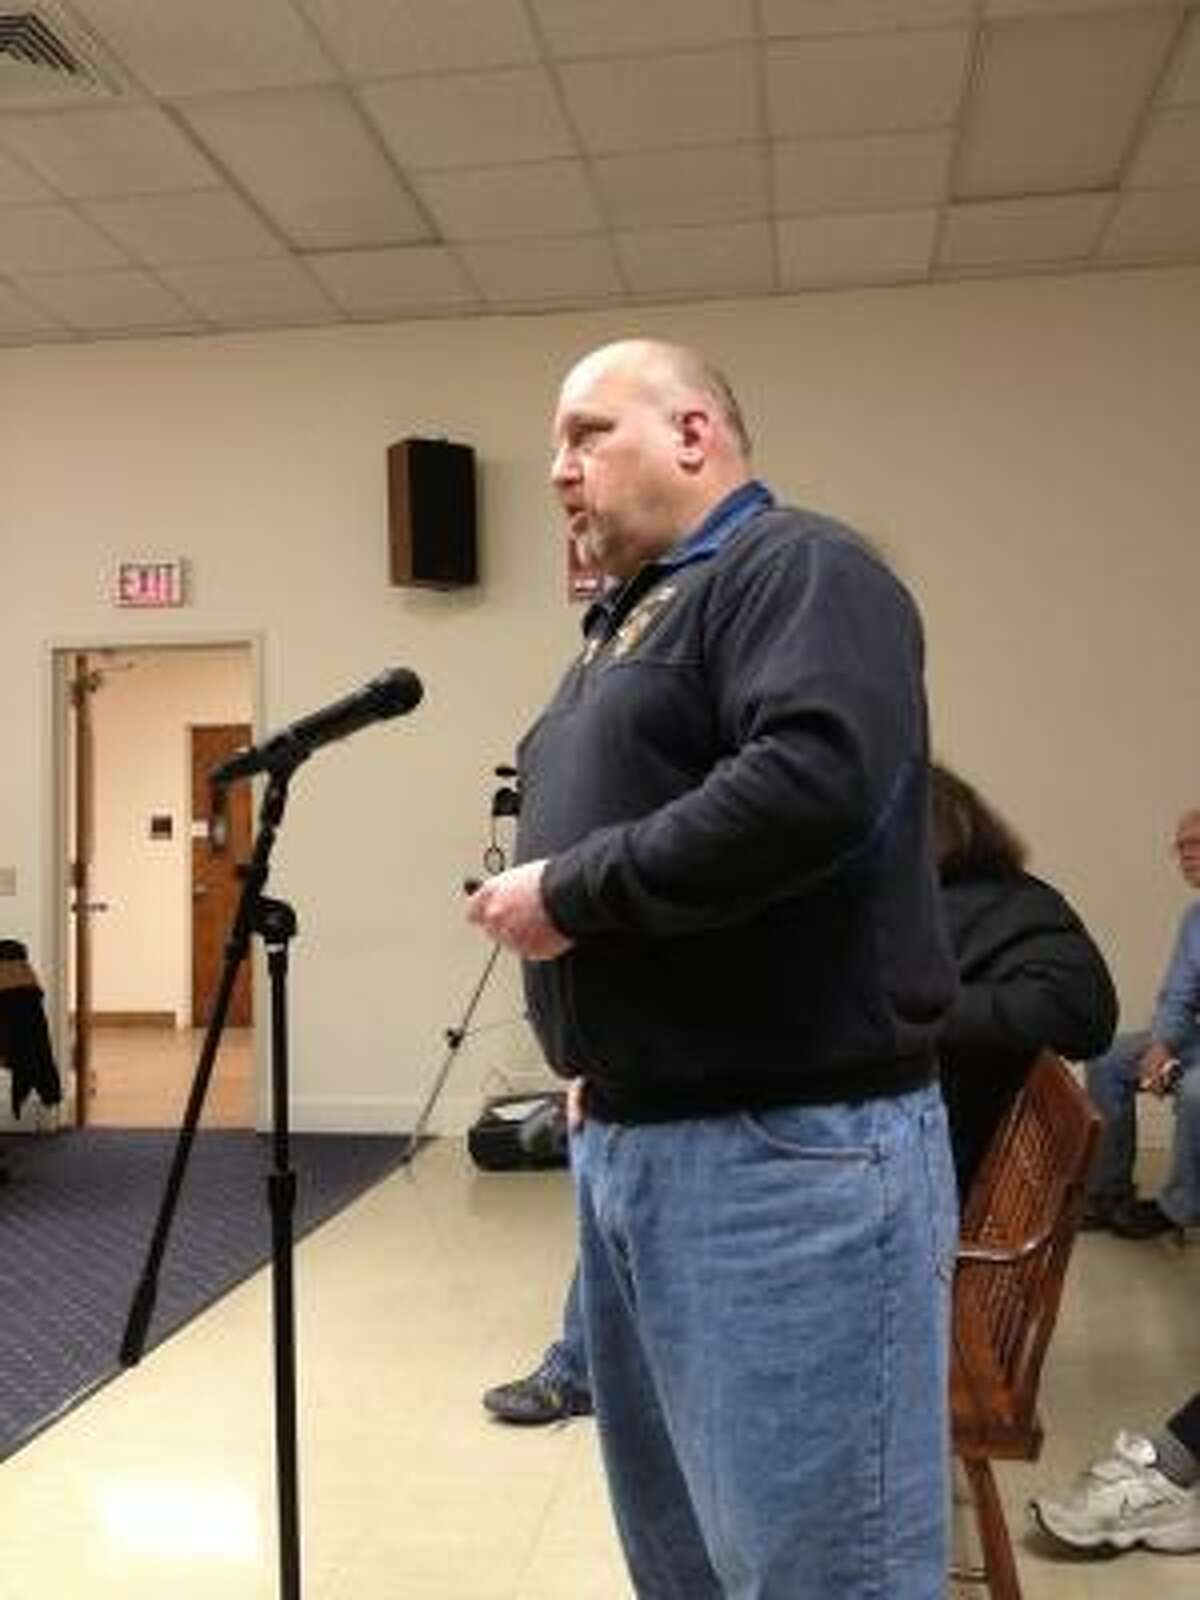 JASON SIEDZIK/Register Citizen Winsted Fire Chief Robert Shopey speaks during Wednesday's Board of Selectmen's meeting. Shopey pointed to the department's aging equipment, gear and facilities as the reasons it needs more funding and support.